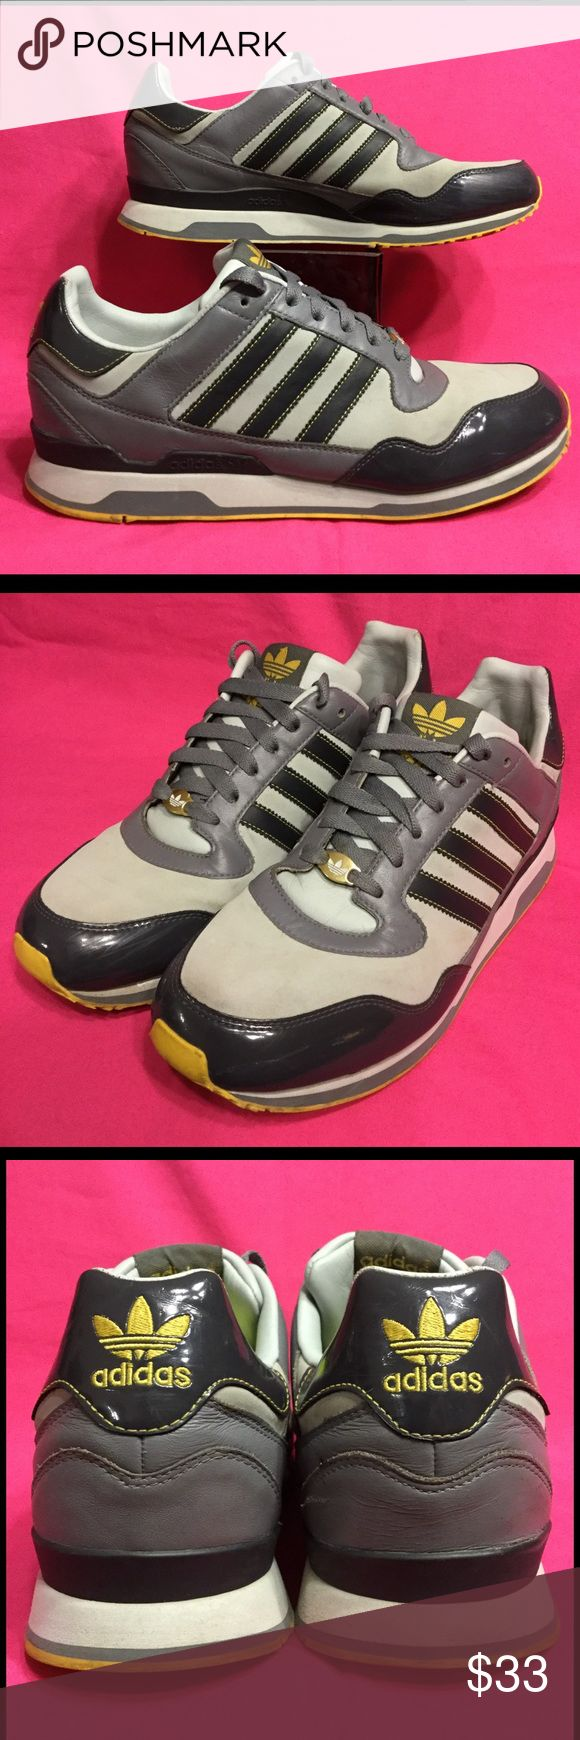 ADIDAS ZXZ LEA leather black/grey . w10.5 m8.5 42 Gentle wear . No issues . Gray nylon area has some discoloration . adidas Shoes